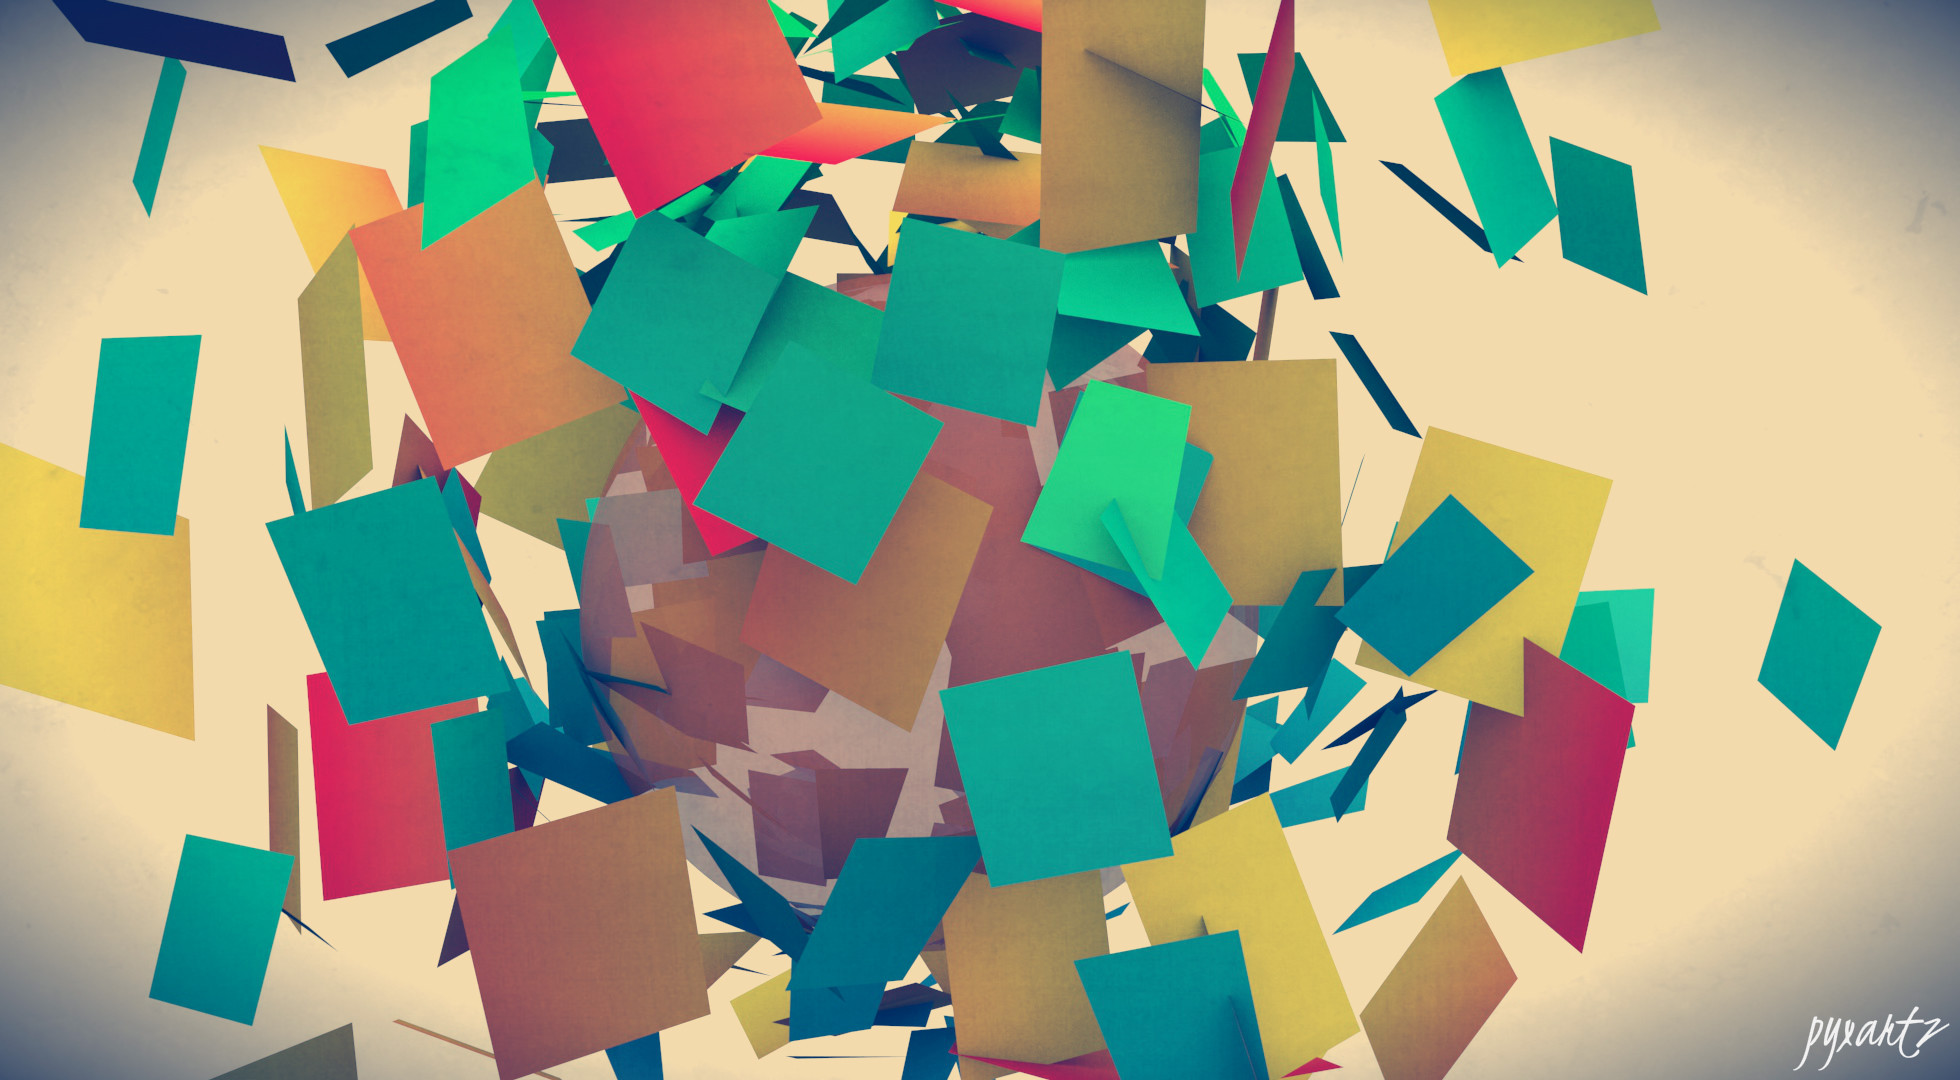 1960x1080 Abstract Wallpaper #10 by pyxArtz Abstract Wallpaper #10 by pyxArtz